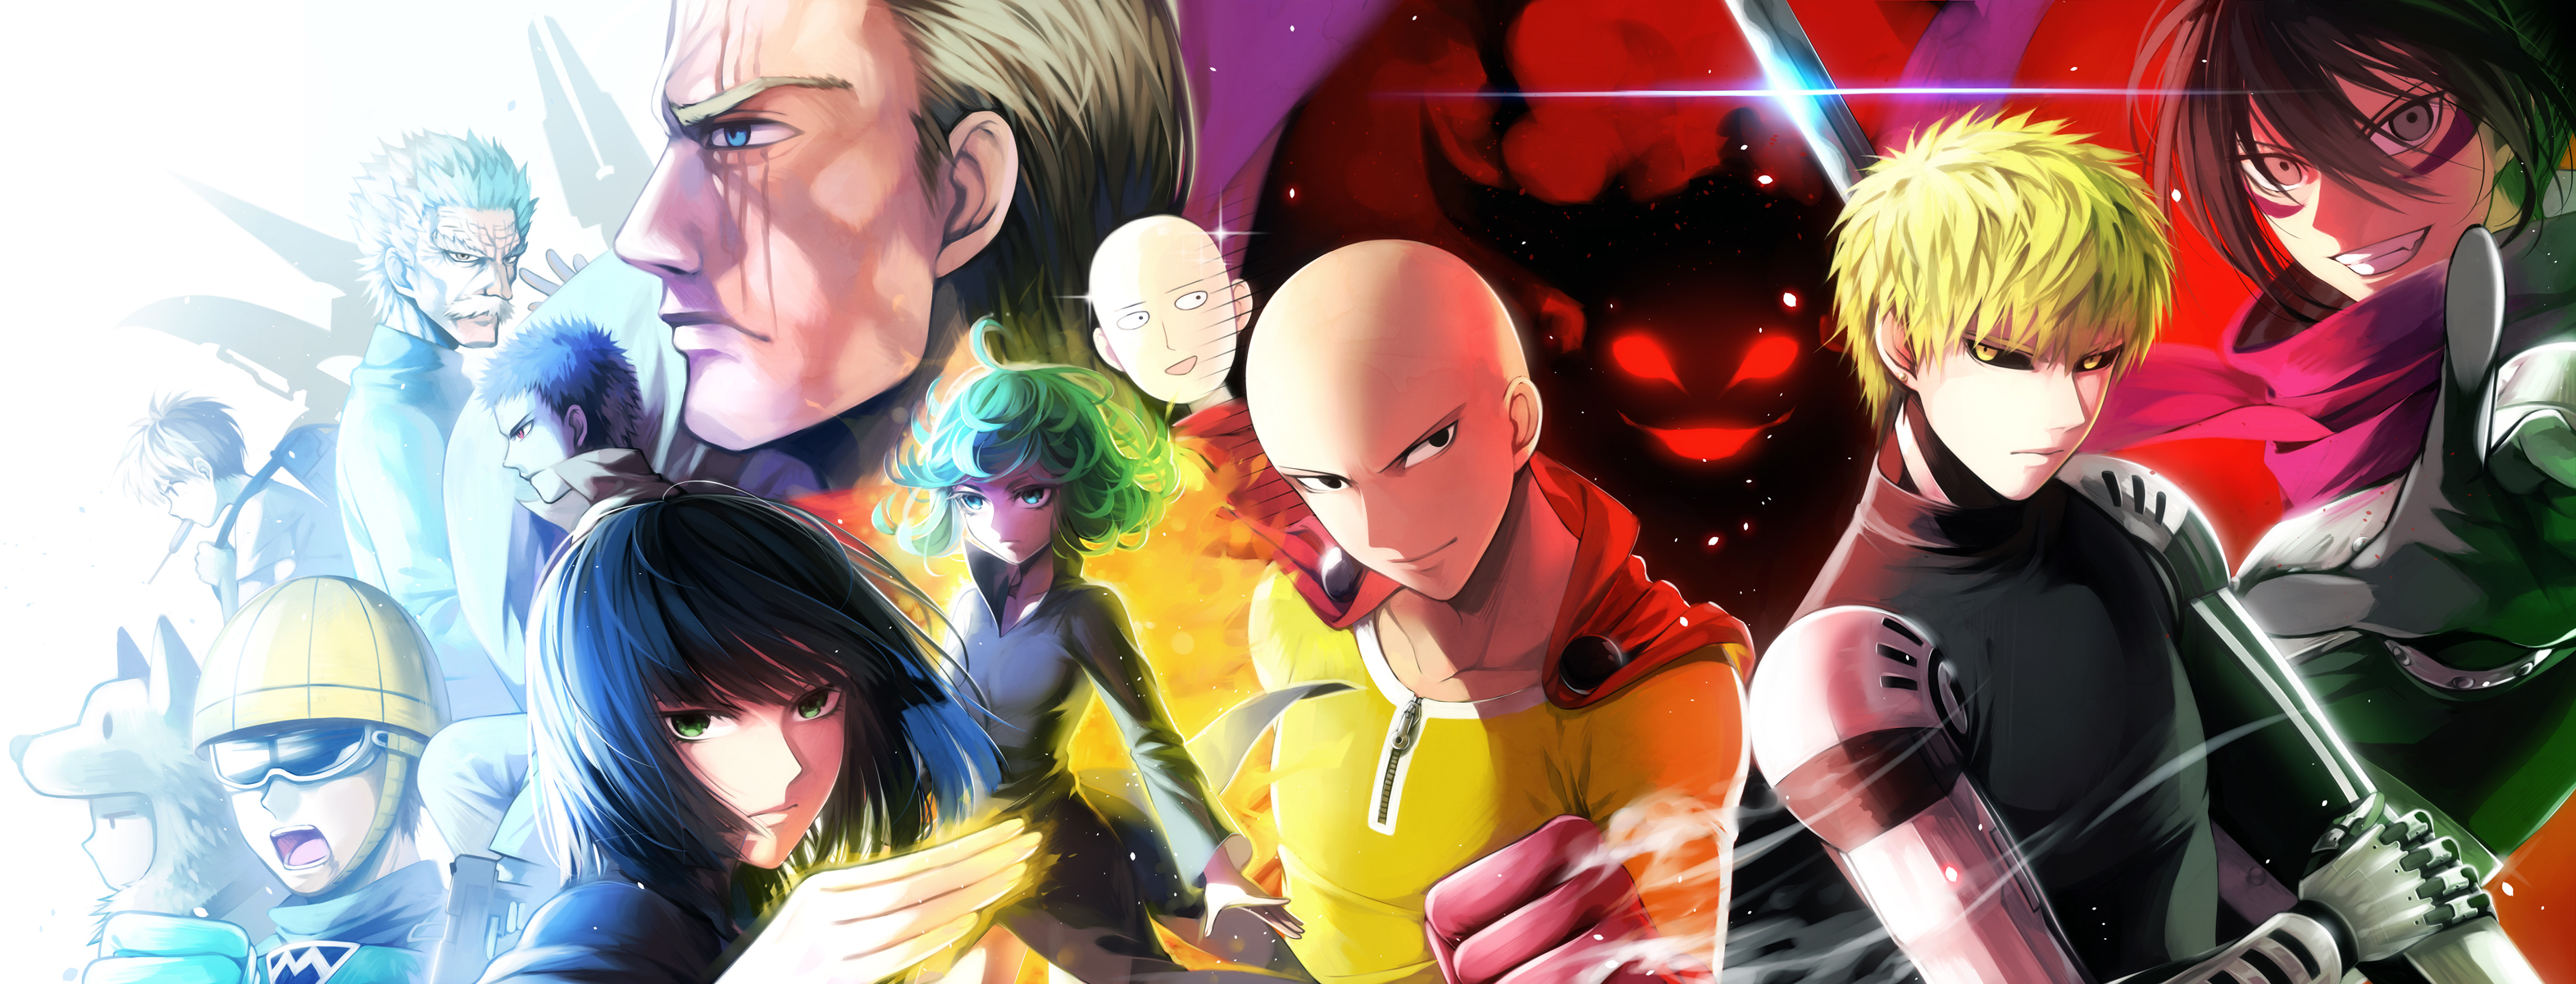 12 King One Punch Man Hd Wallpapers Background Images